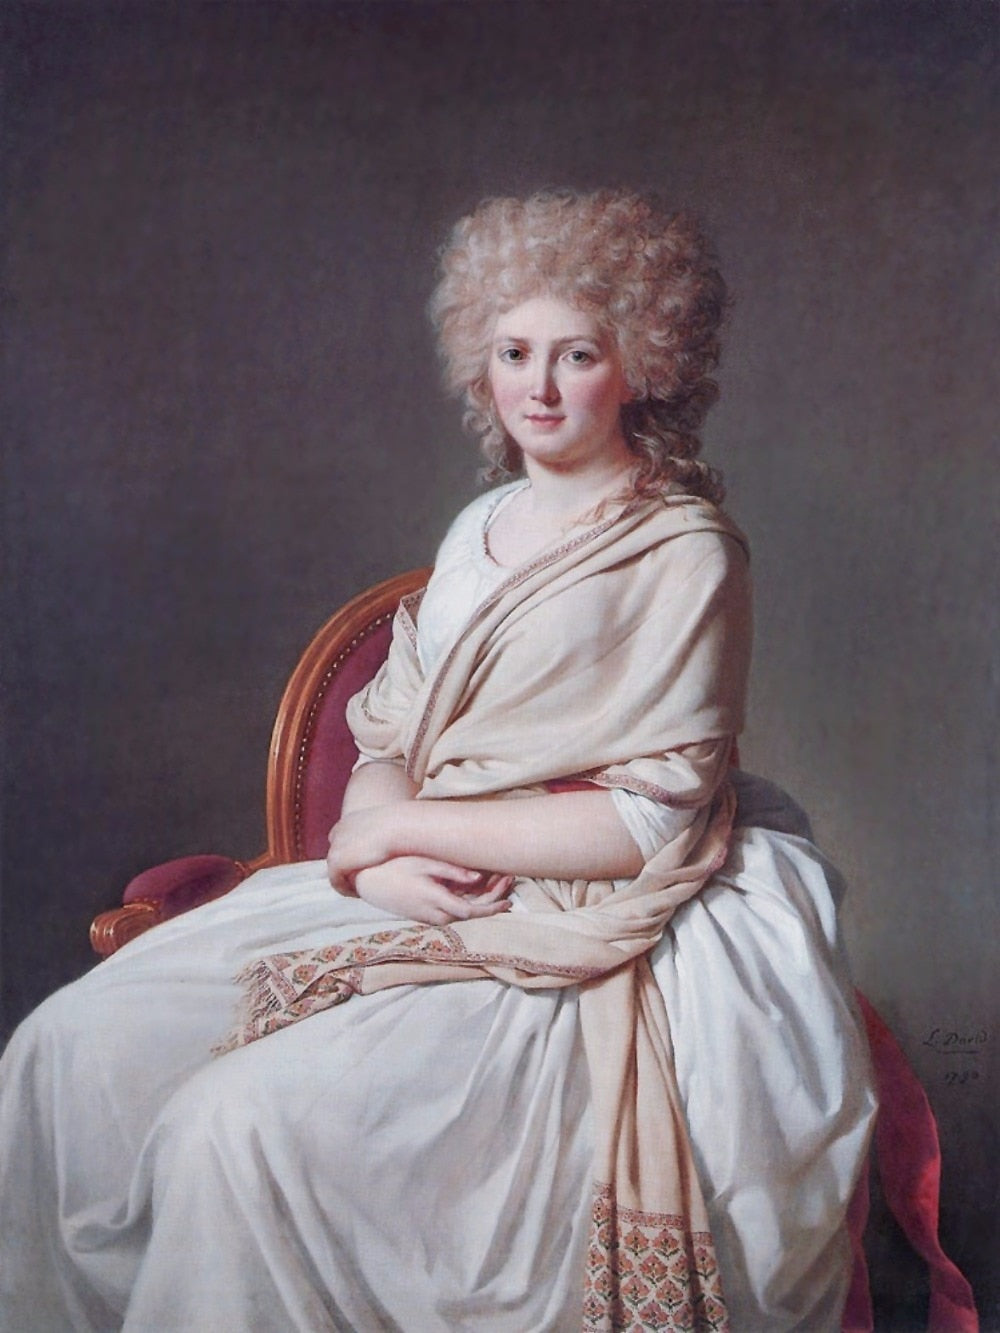 Oil Painting Reproduction on Linen Canvas,portrait-of-anne-marie-louise-thelusson-countess-of-sorcy-1790 by Jacques-Louis David - Smoulder Products